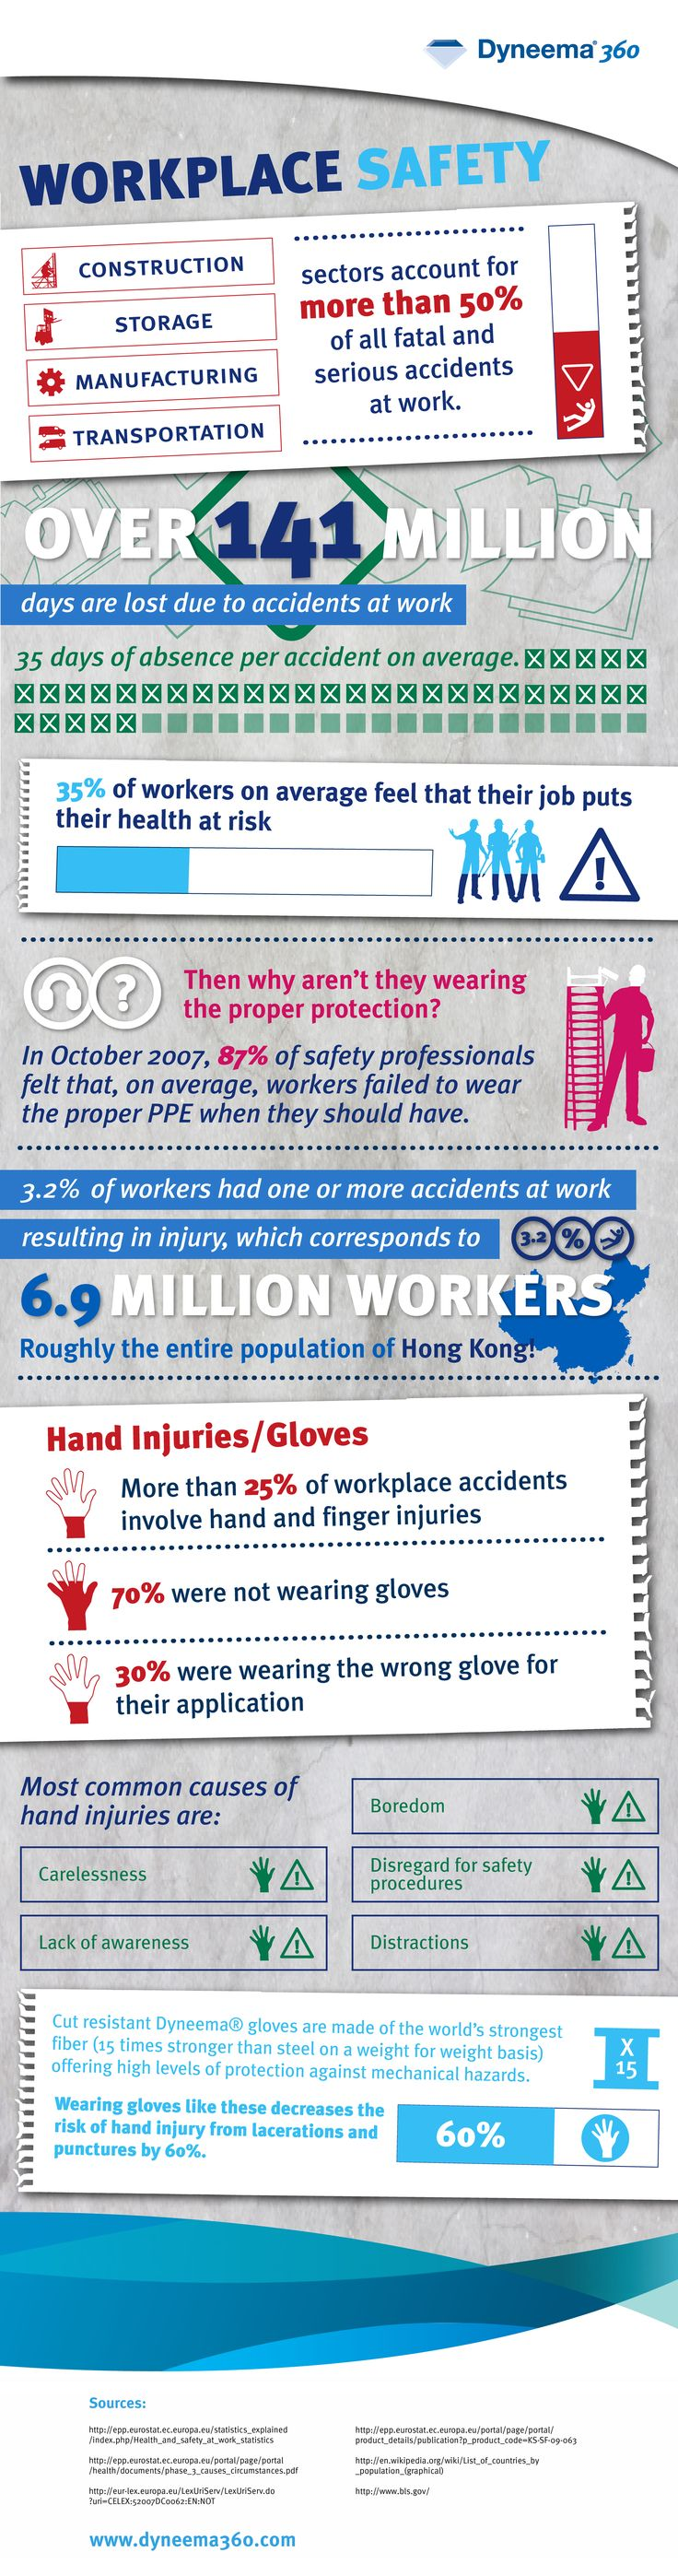 The workplace is where we spend the majority of our time so being in a healthy and safe environment is critical.  When injuries occur, it not only imp